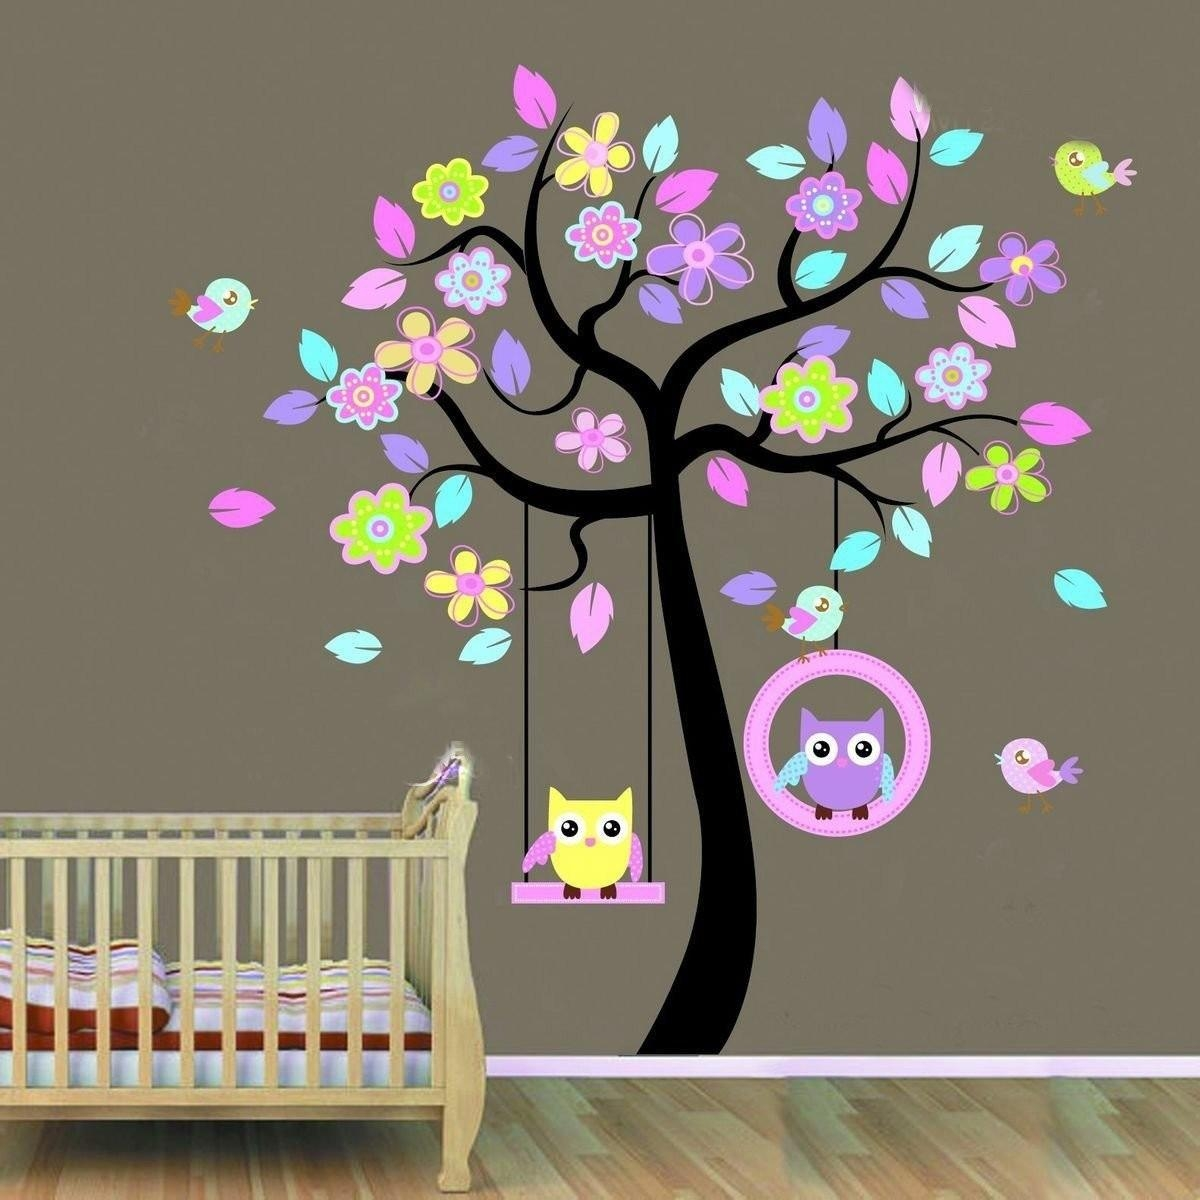 Huge Removable Swing Owl & Birds Colorful Scroll Tree Wall Art pertaining to Owl Wall Art Stickers